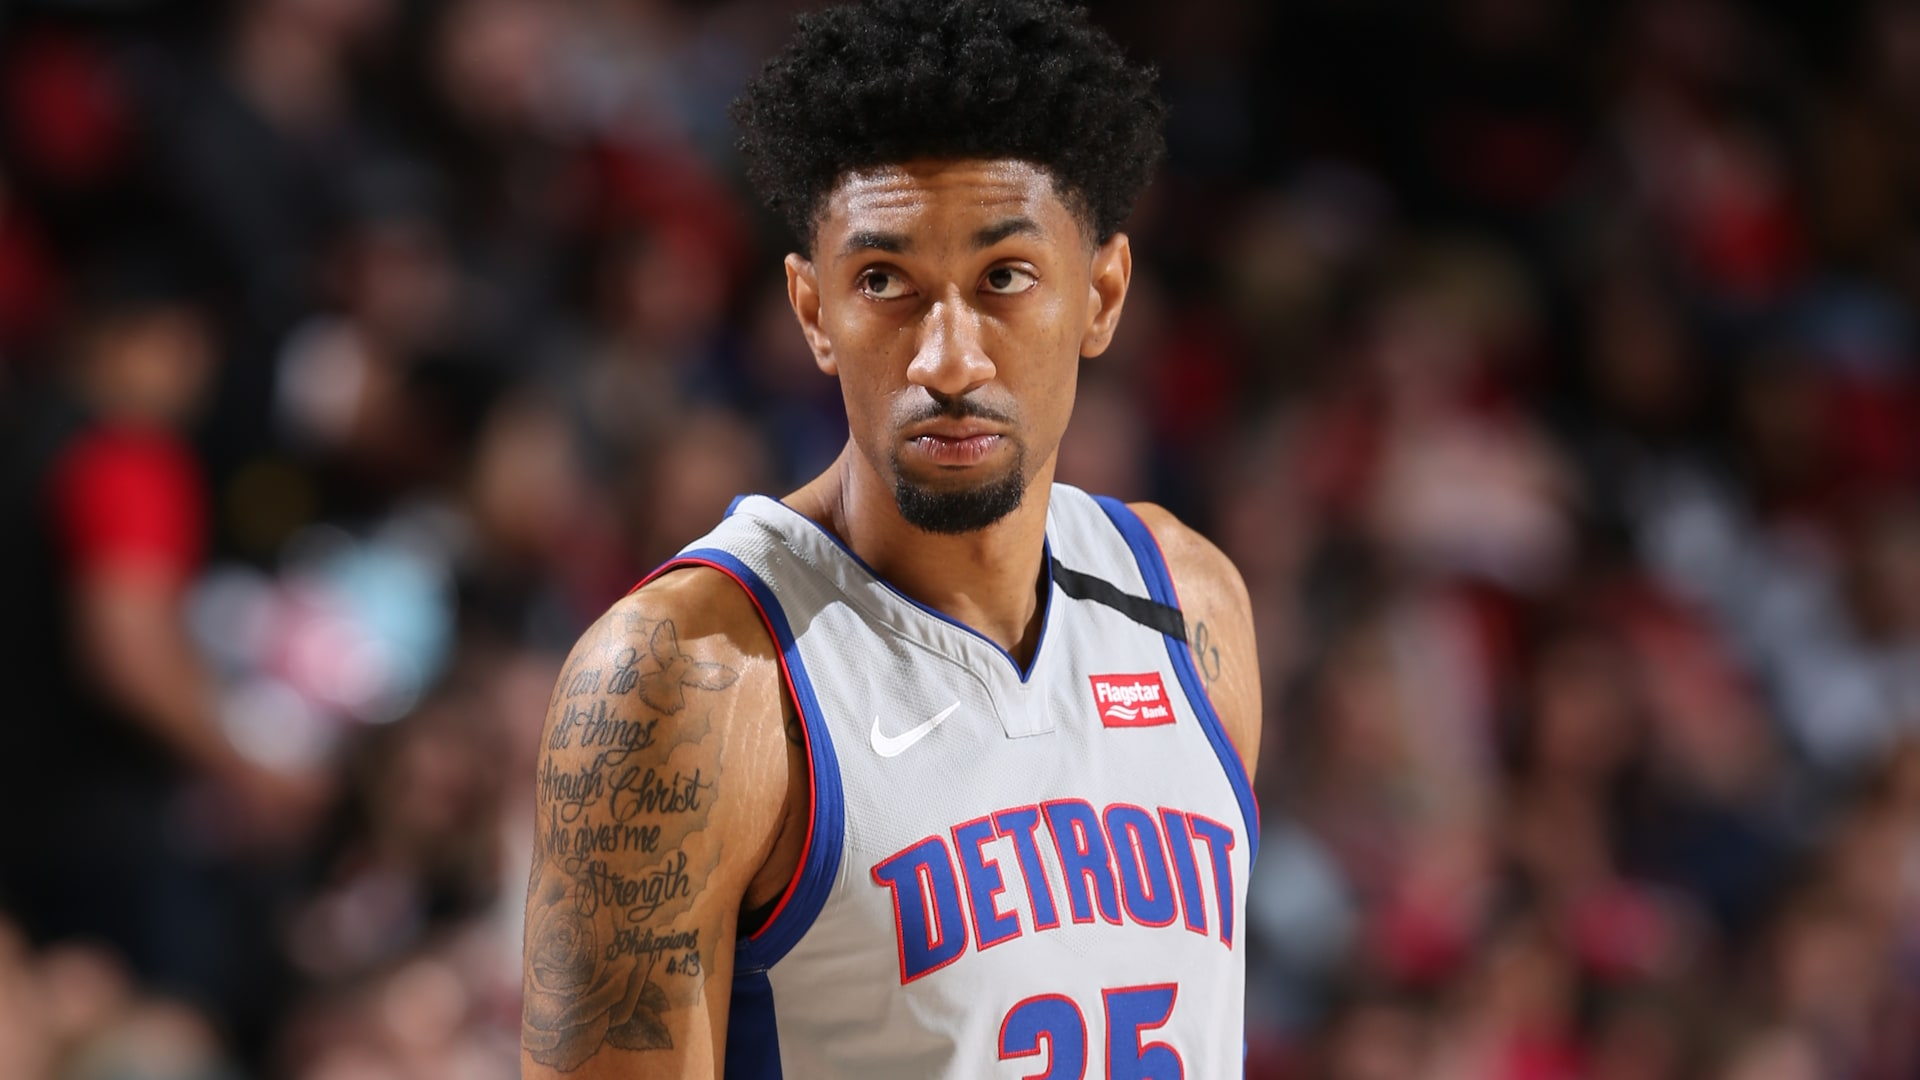 Report: Pistons' Christian Wood showing signs of full recovery